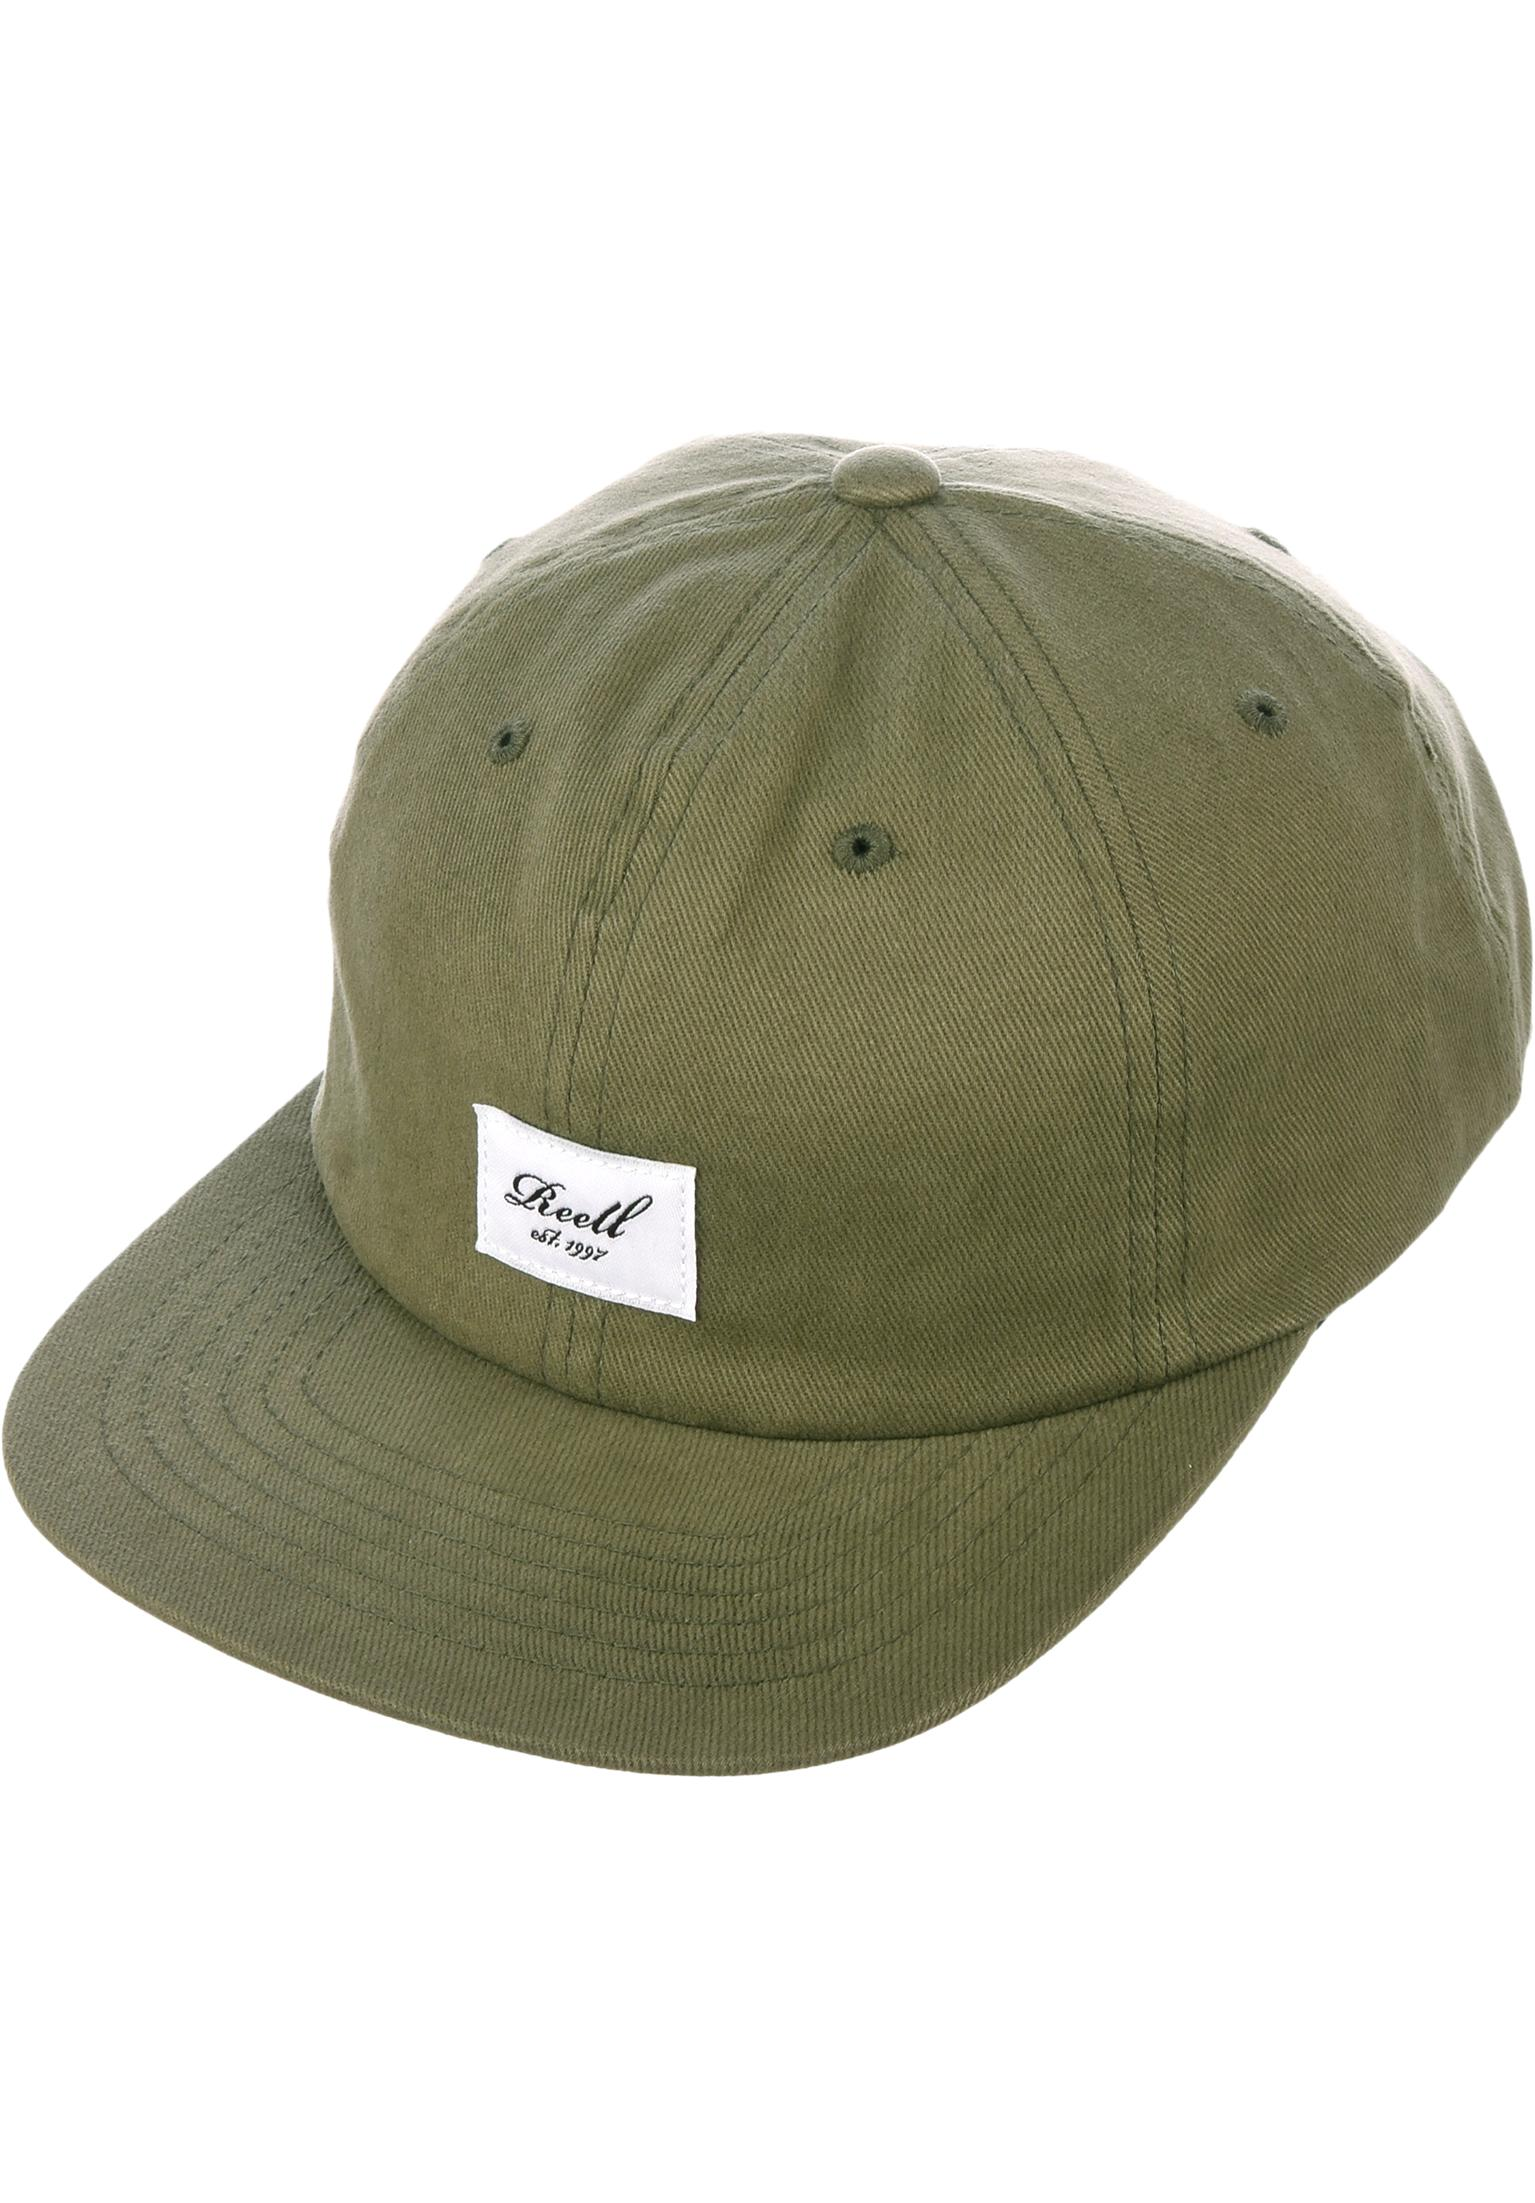 672c44788d9d5 Flat 6 Panel Reell Caps in olive for Men